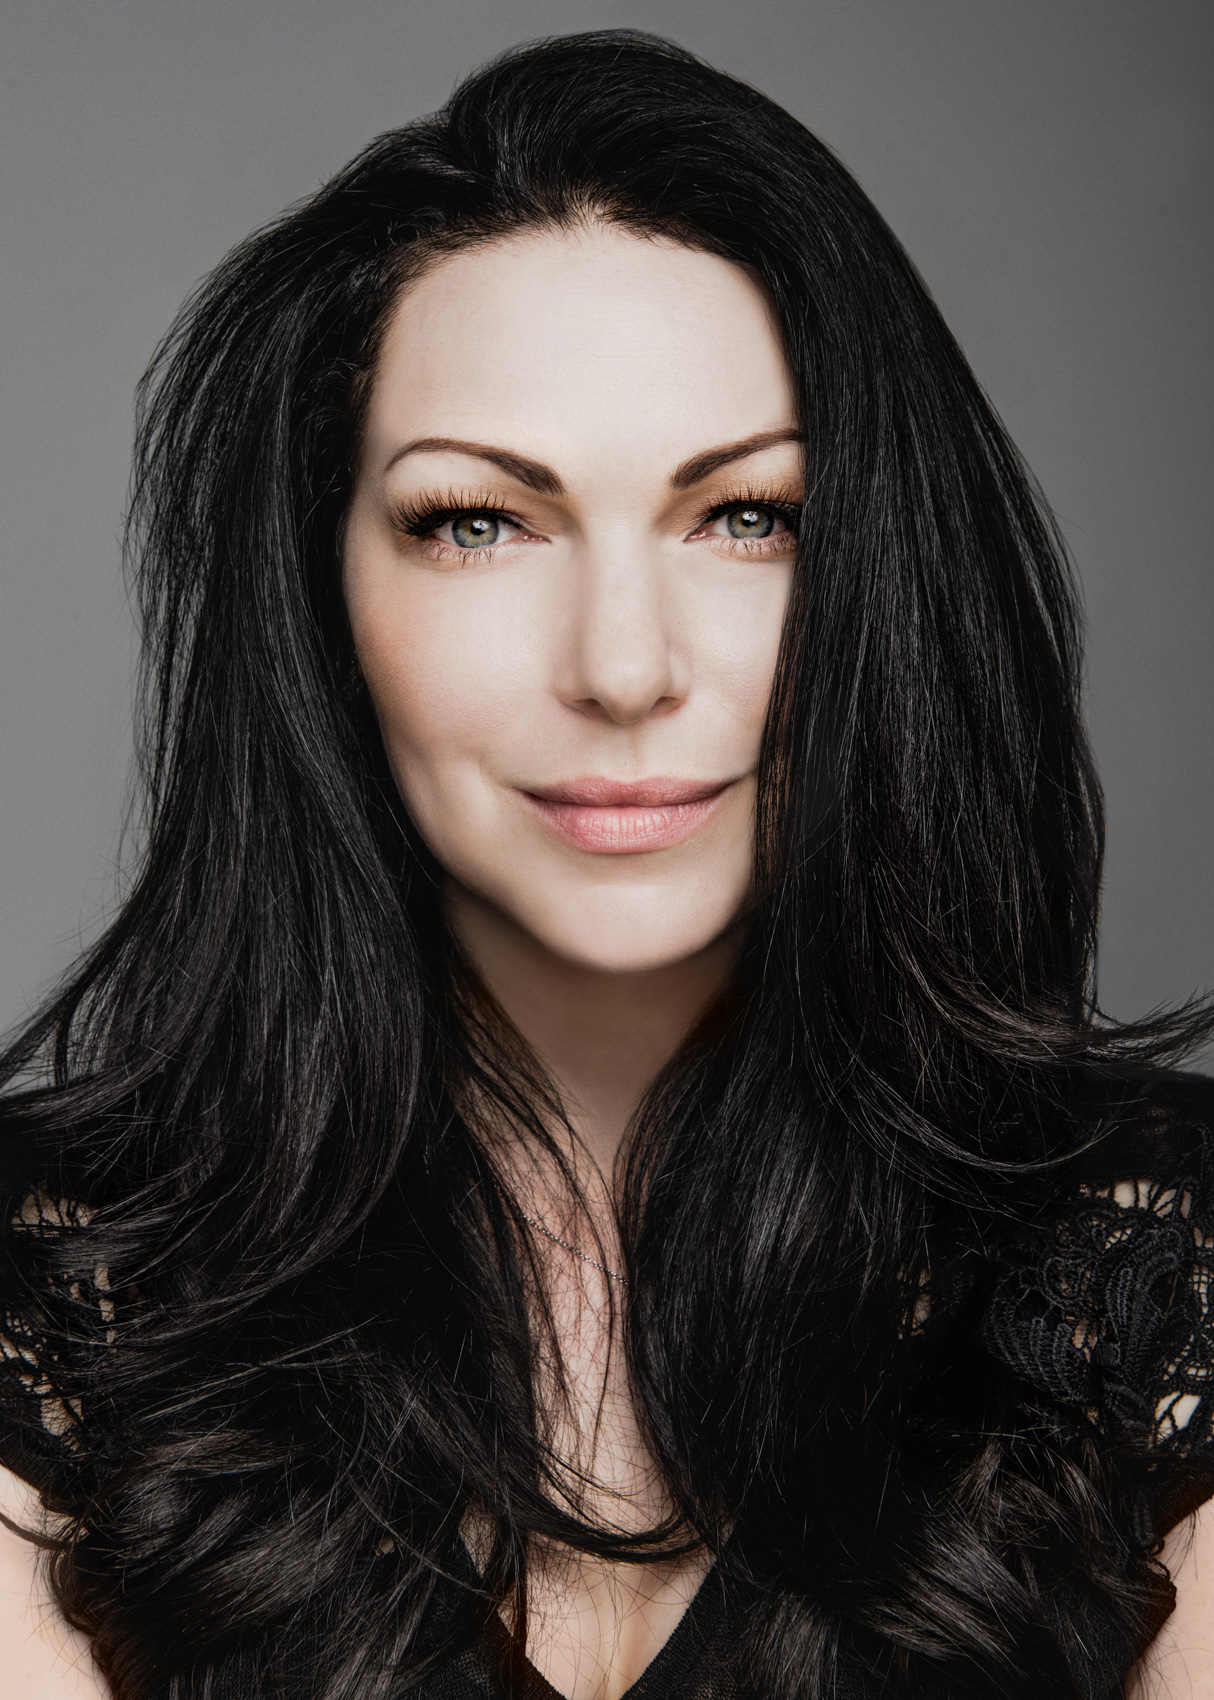 Los Angeles Portrait Photographer - Laura Prepon in studio by Ray Kachatorian